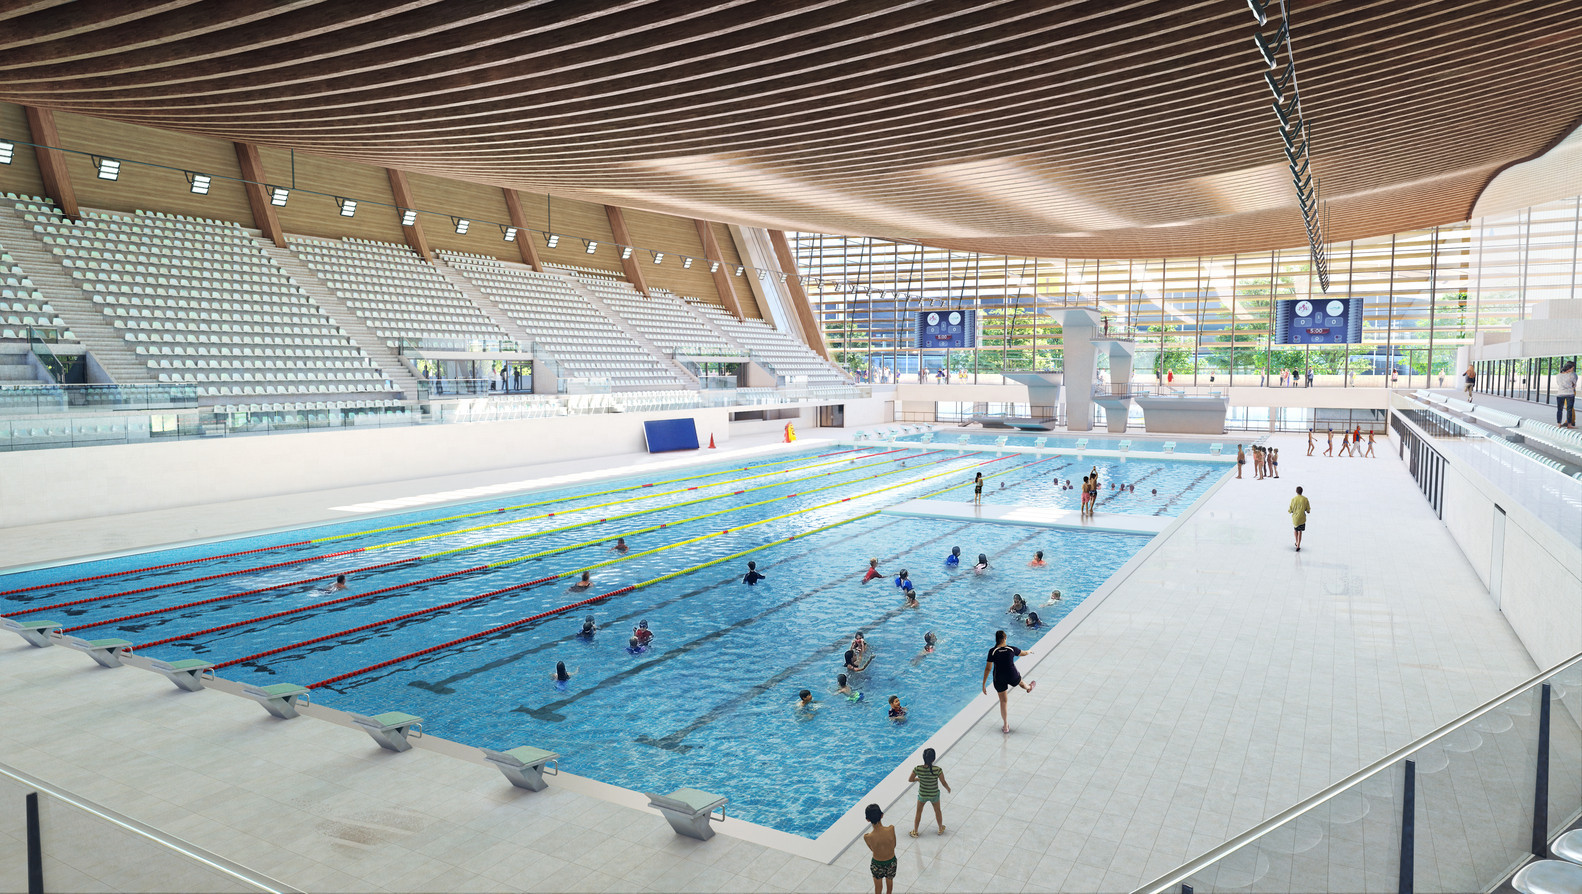 Swimming will be under one roof at the Paris 2024 Olympics and Paralympics ©Paris 2024